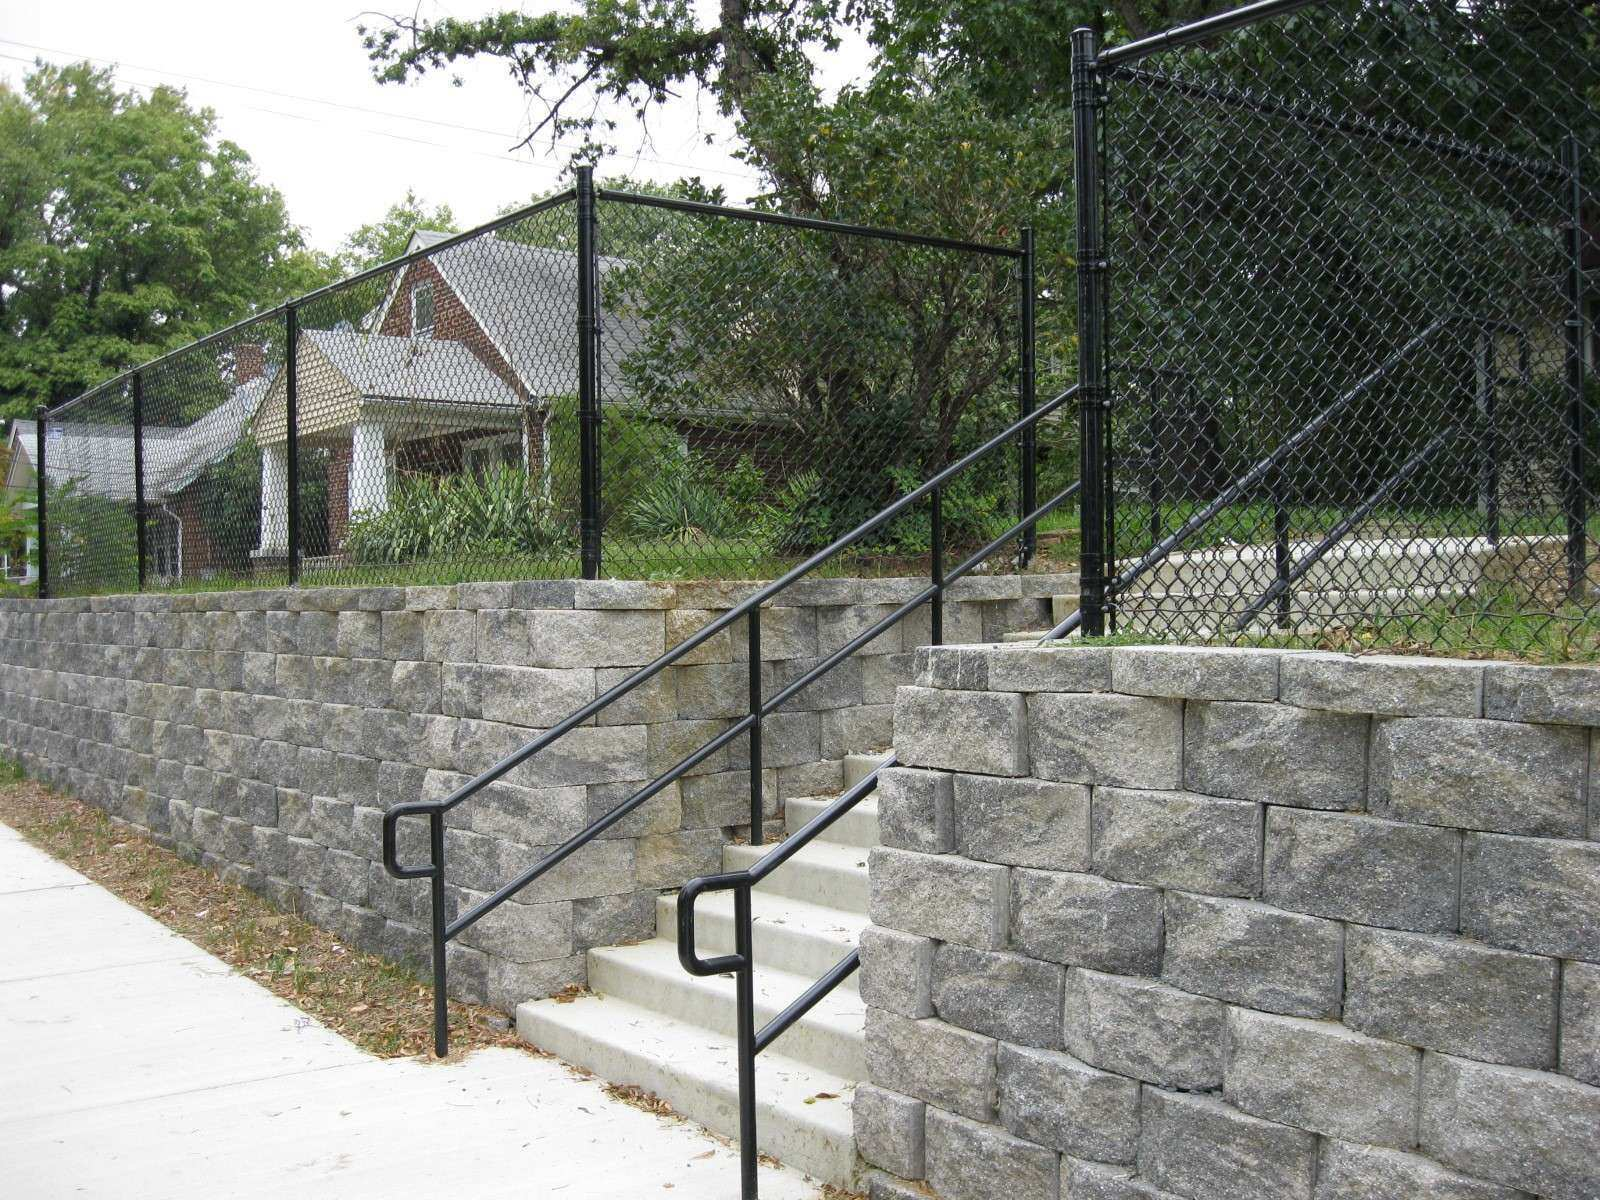 Retaining Wall Pictures Of Retaining Walls Ideas Best Of Brudis & associates Inc